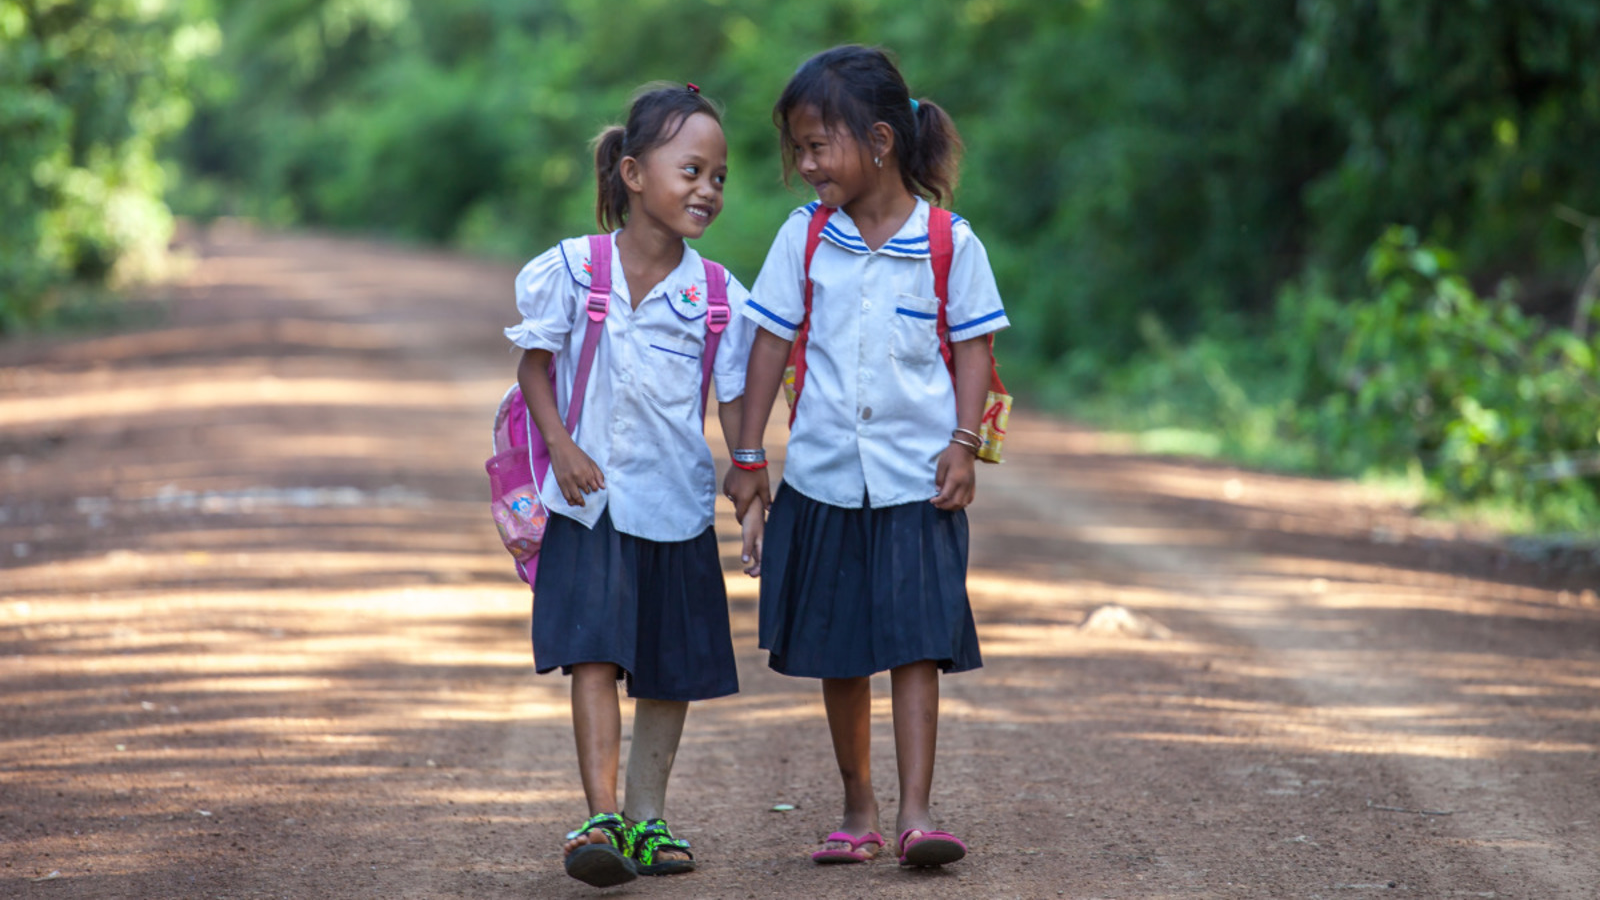 Channa walks to school with a friend in Cambodia